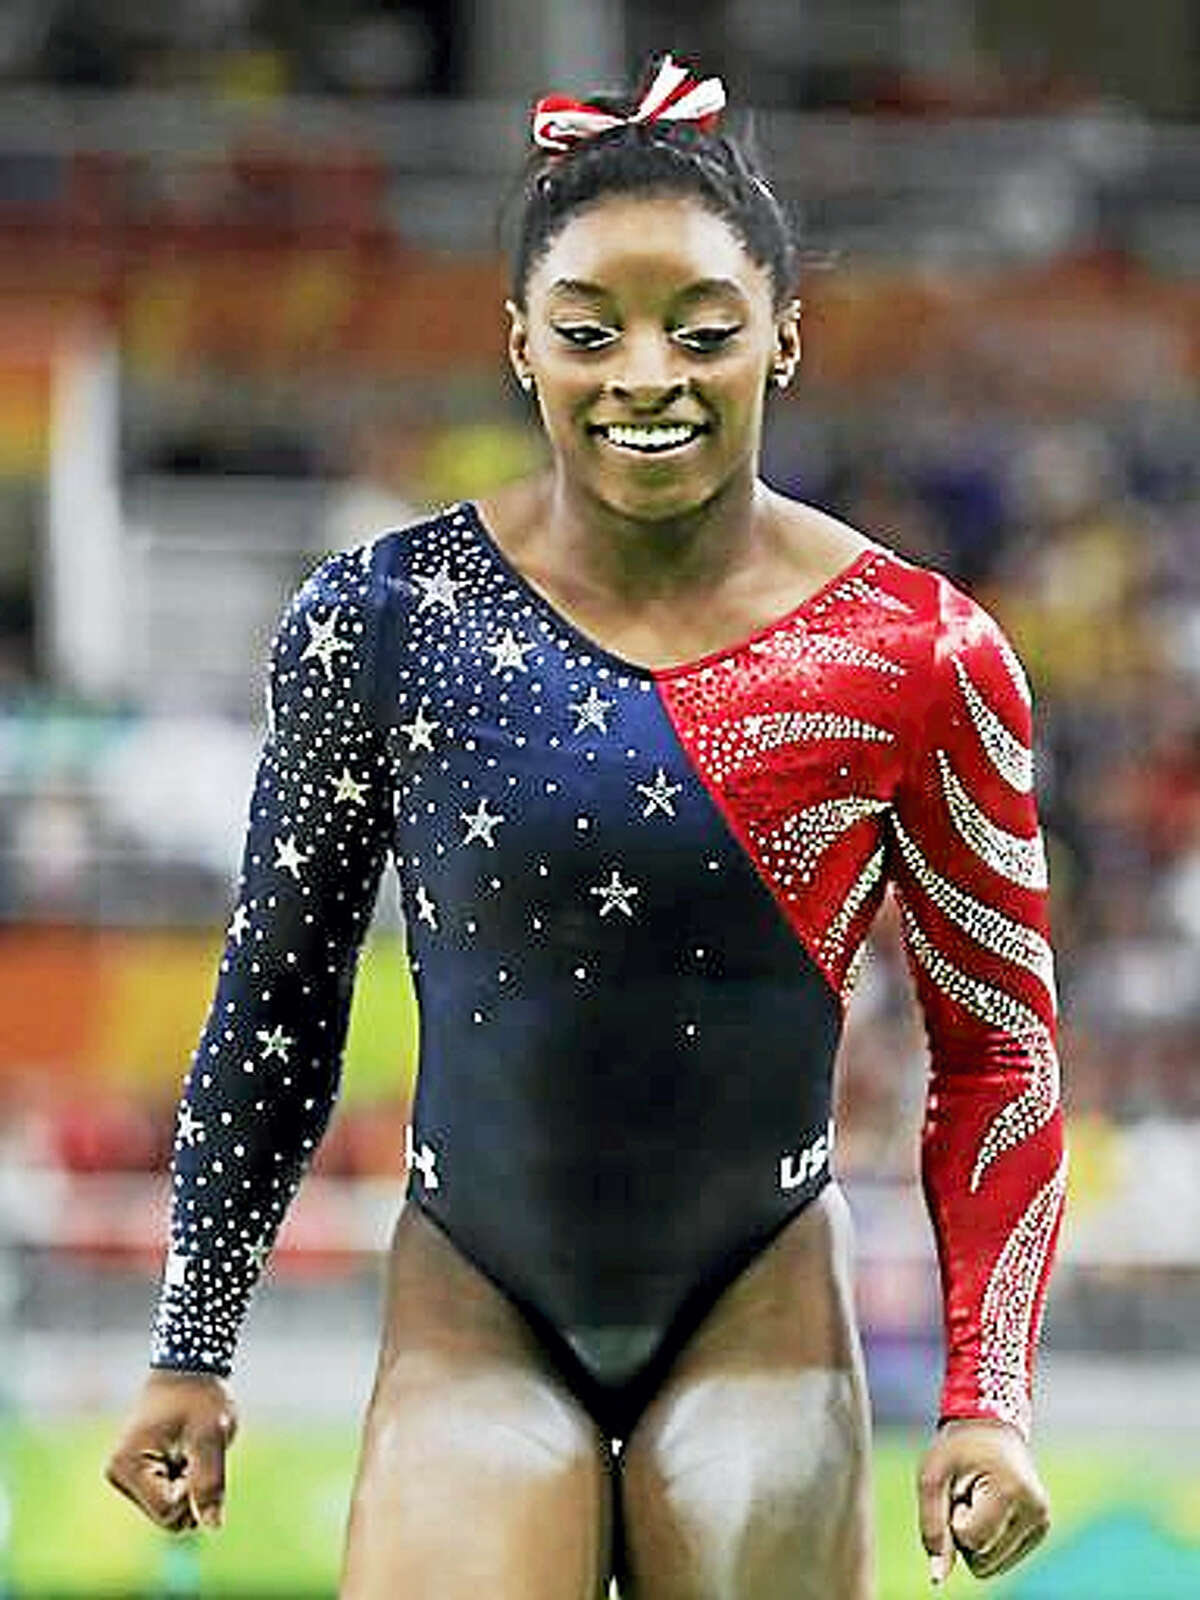 United States' Simone Biles celebrates after completing her routine on the balance beam during the artistic gymnastics women's qualification at the 2016 Summer Olympics in Rio de Janeiro, Brazil, Sunday, Aug. 7, 2016.